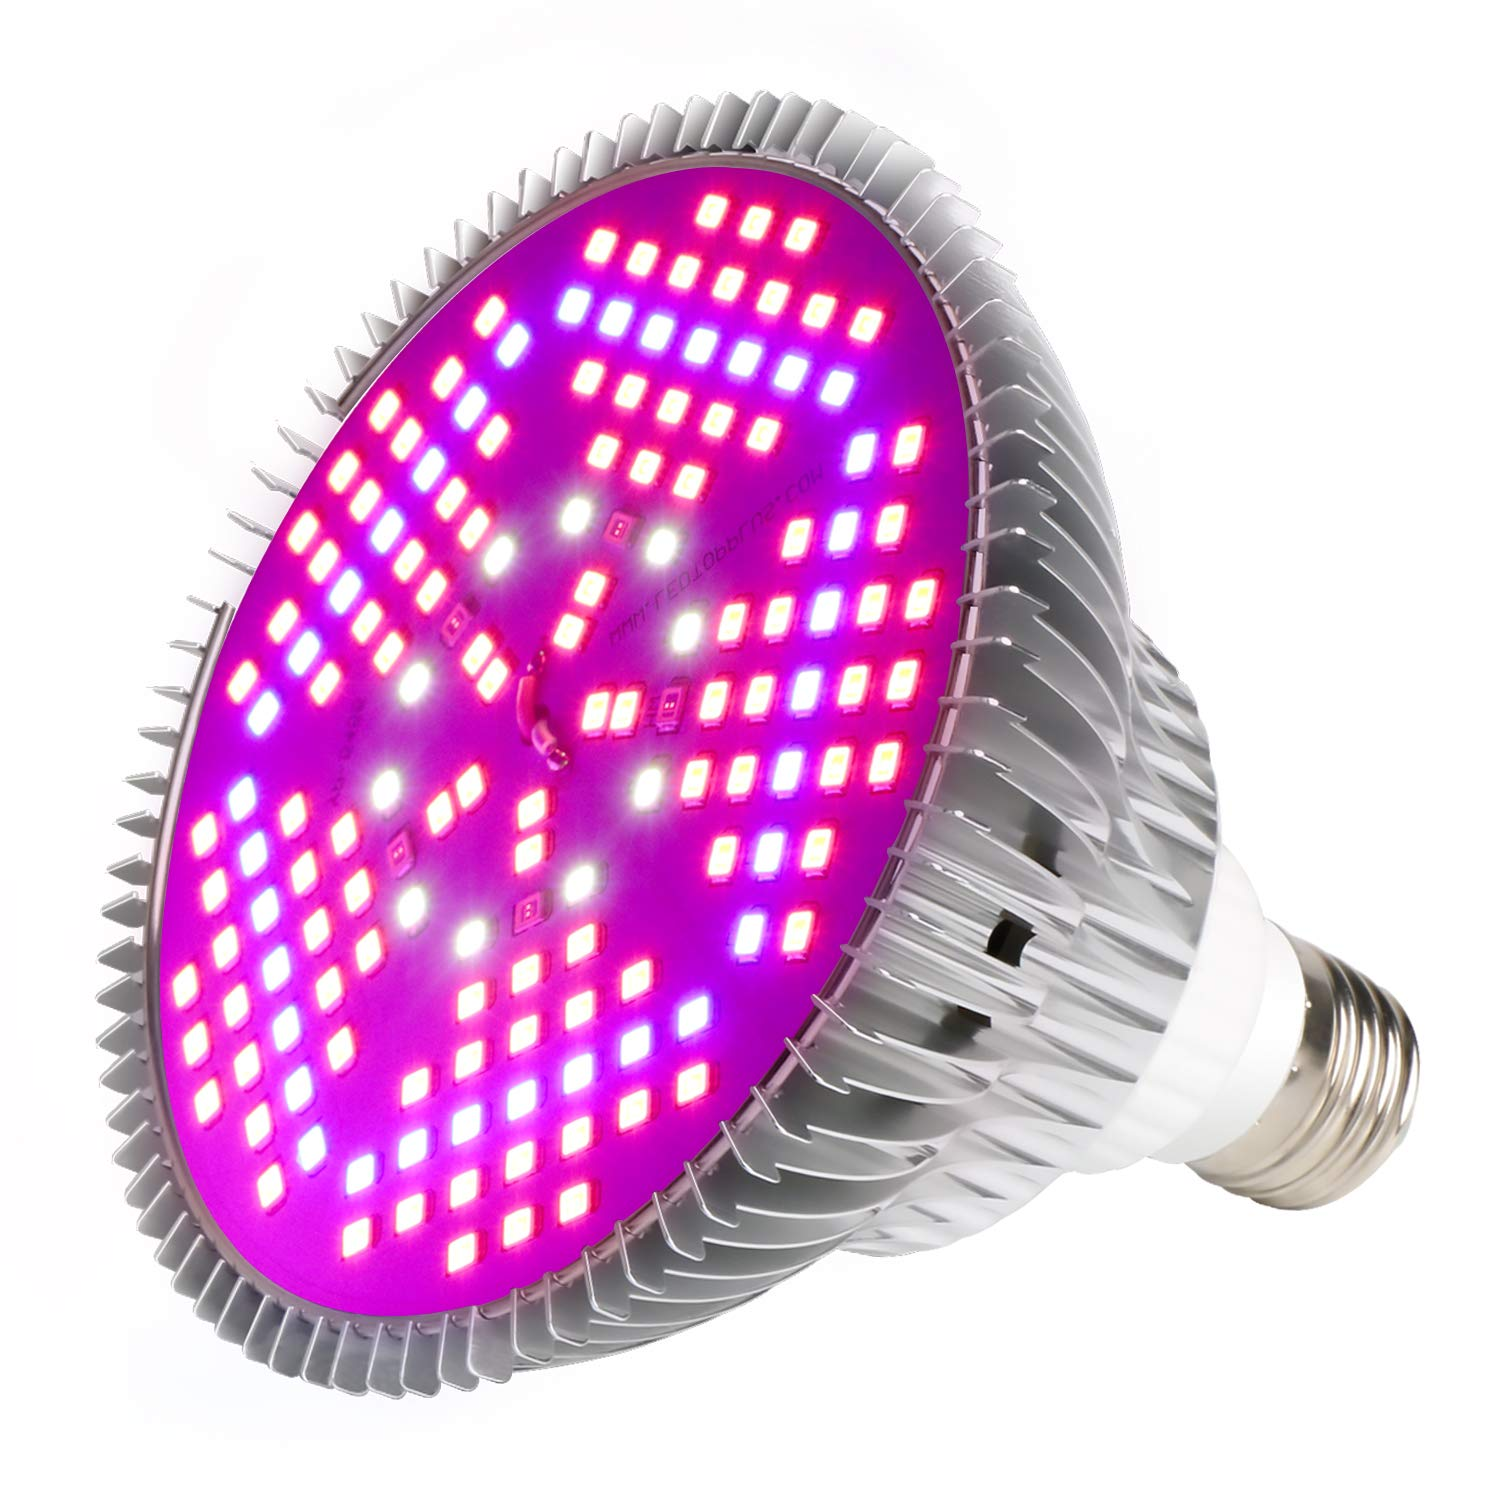 100W Led Grow Light Bulb, Plant Lights Full Spectrum for Indoor Plants Hydroponics, Led Plants Bulbs for Flowers Tobacco Garden Greenhouse and Organic Soil (E26 120LEDs) …